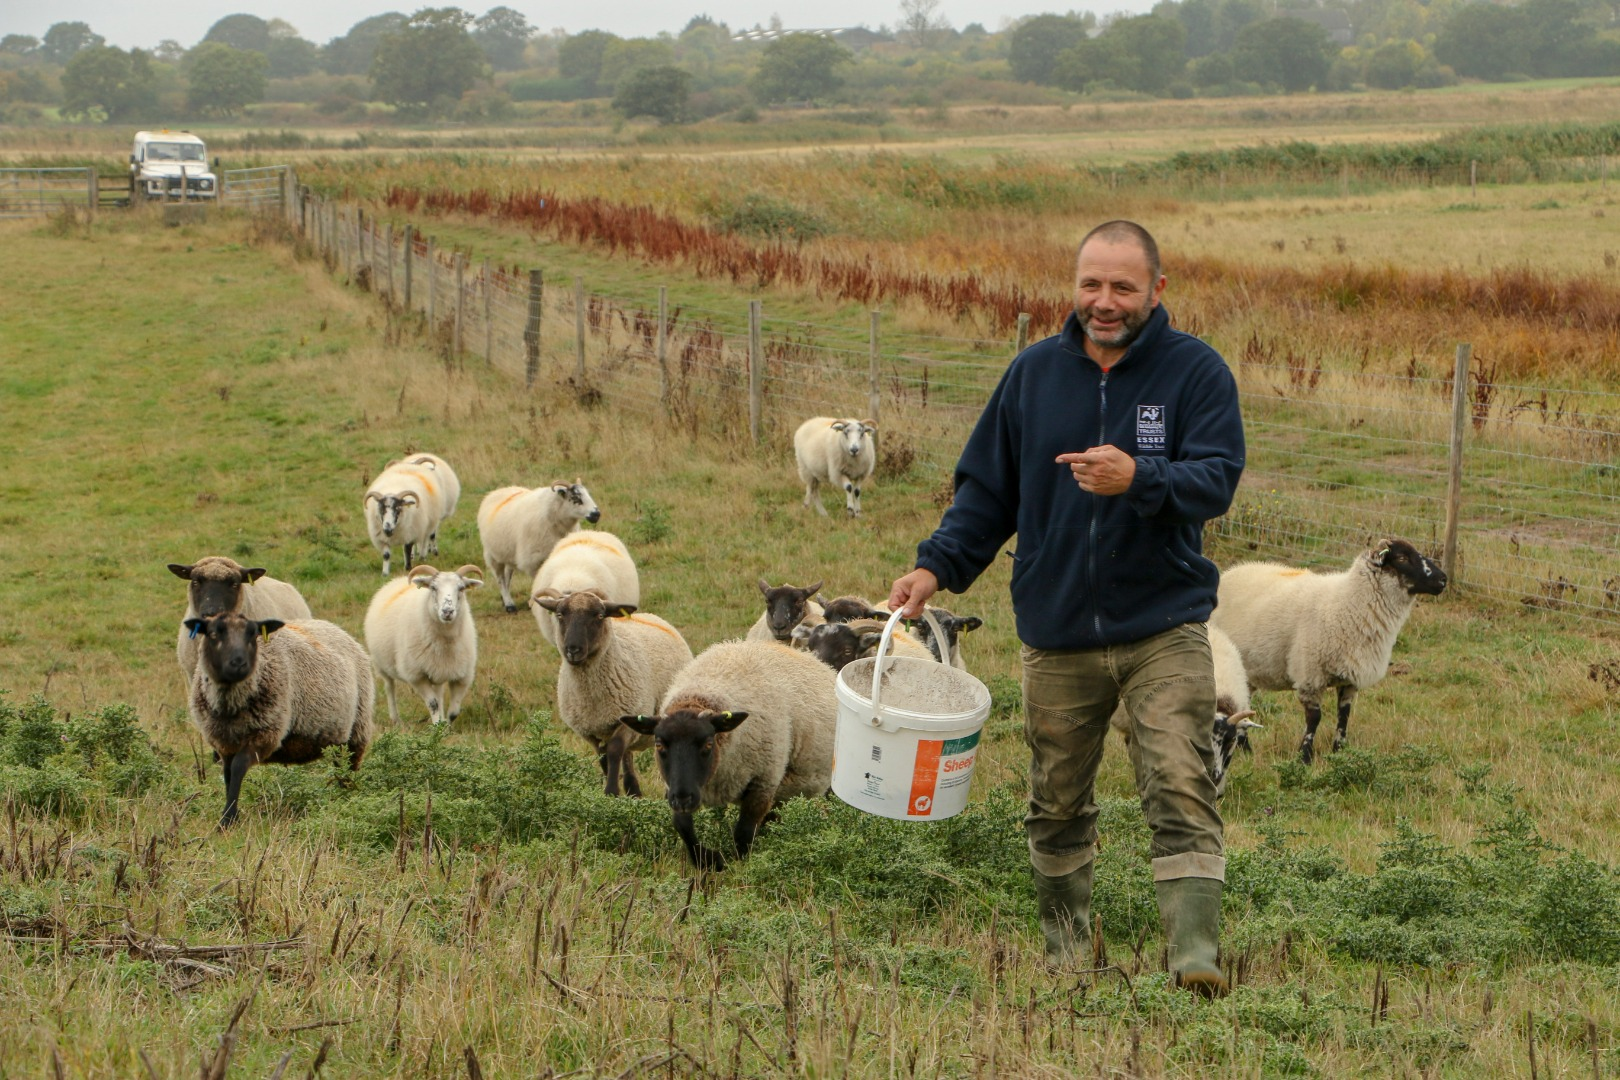 Feeding conservation grazing sheep